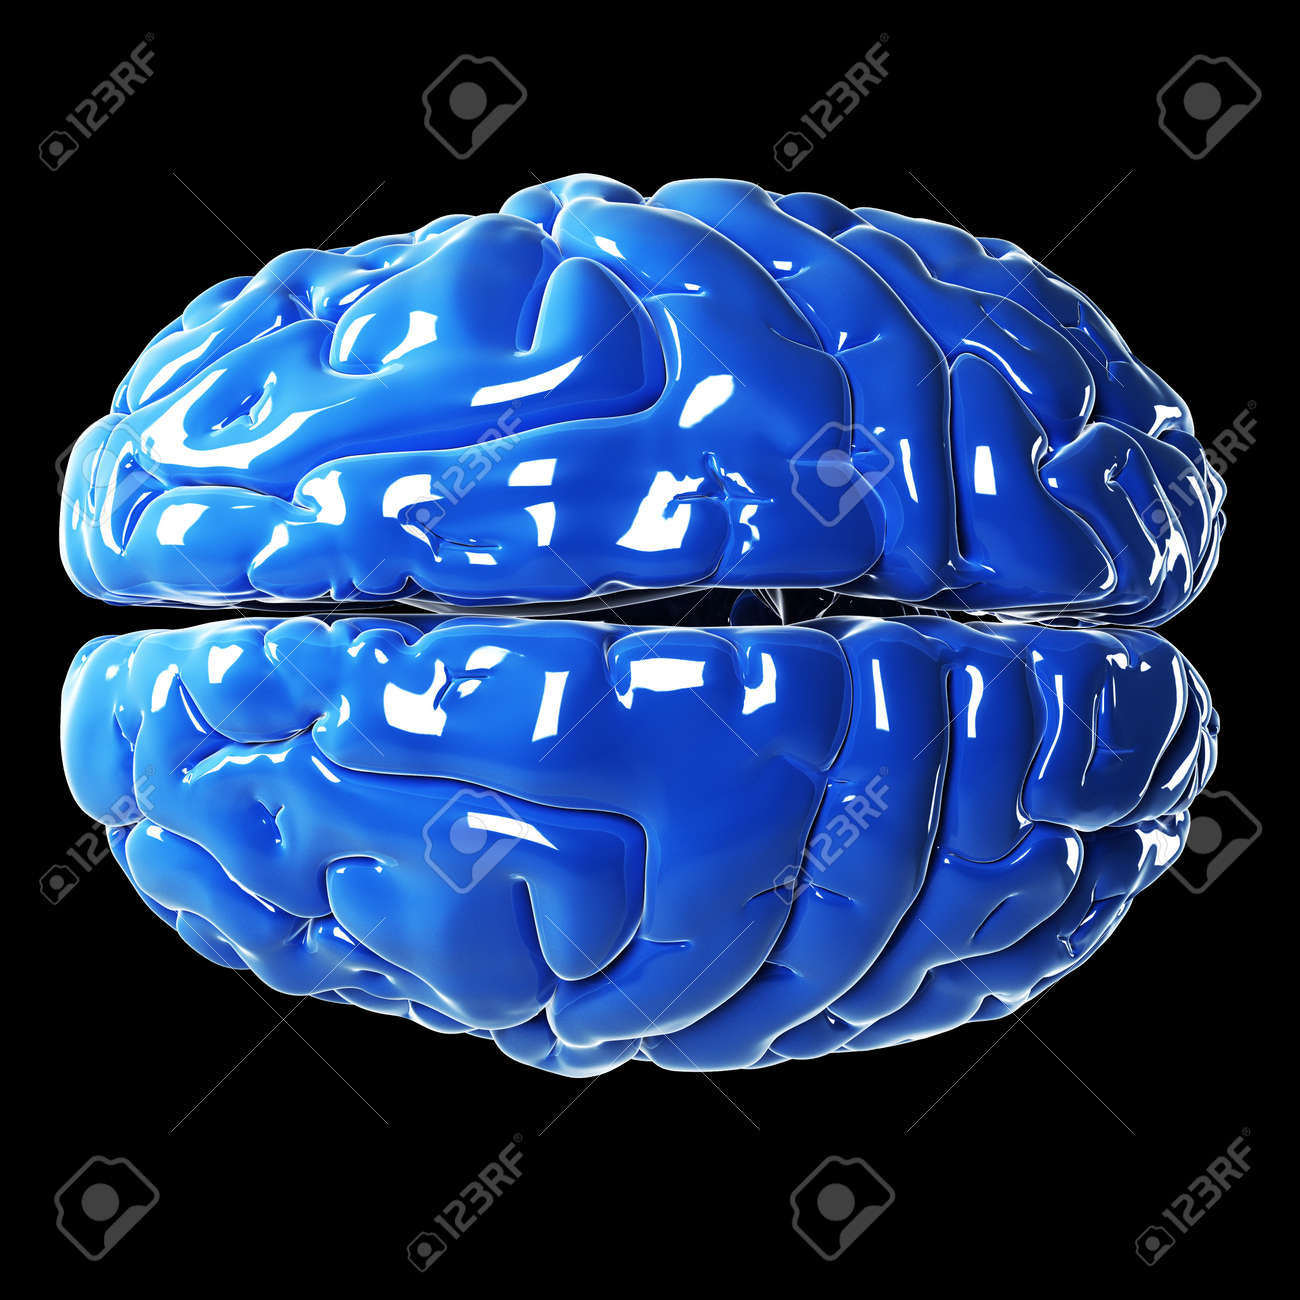 3d rendered illustration - glossy blue brain Stock Photo - 18071515